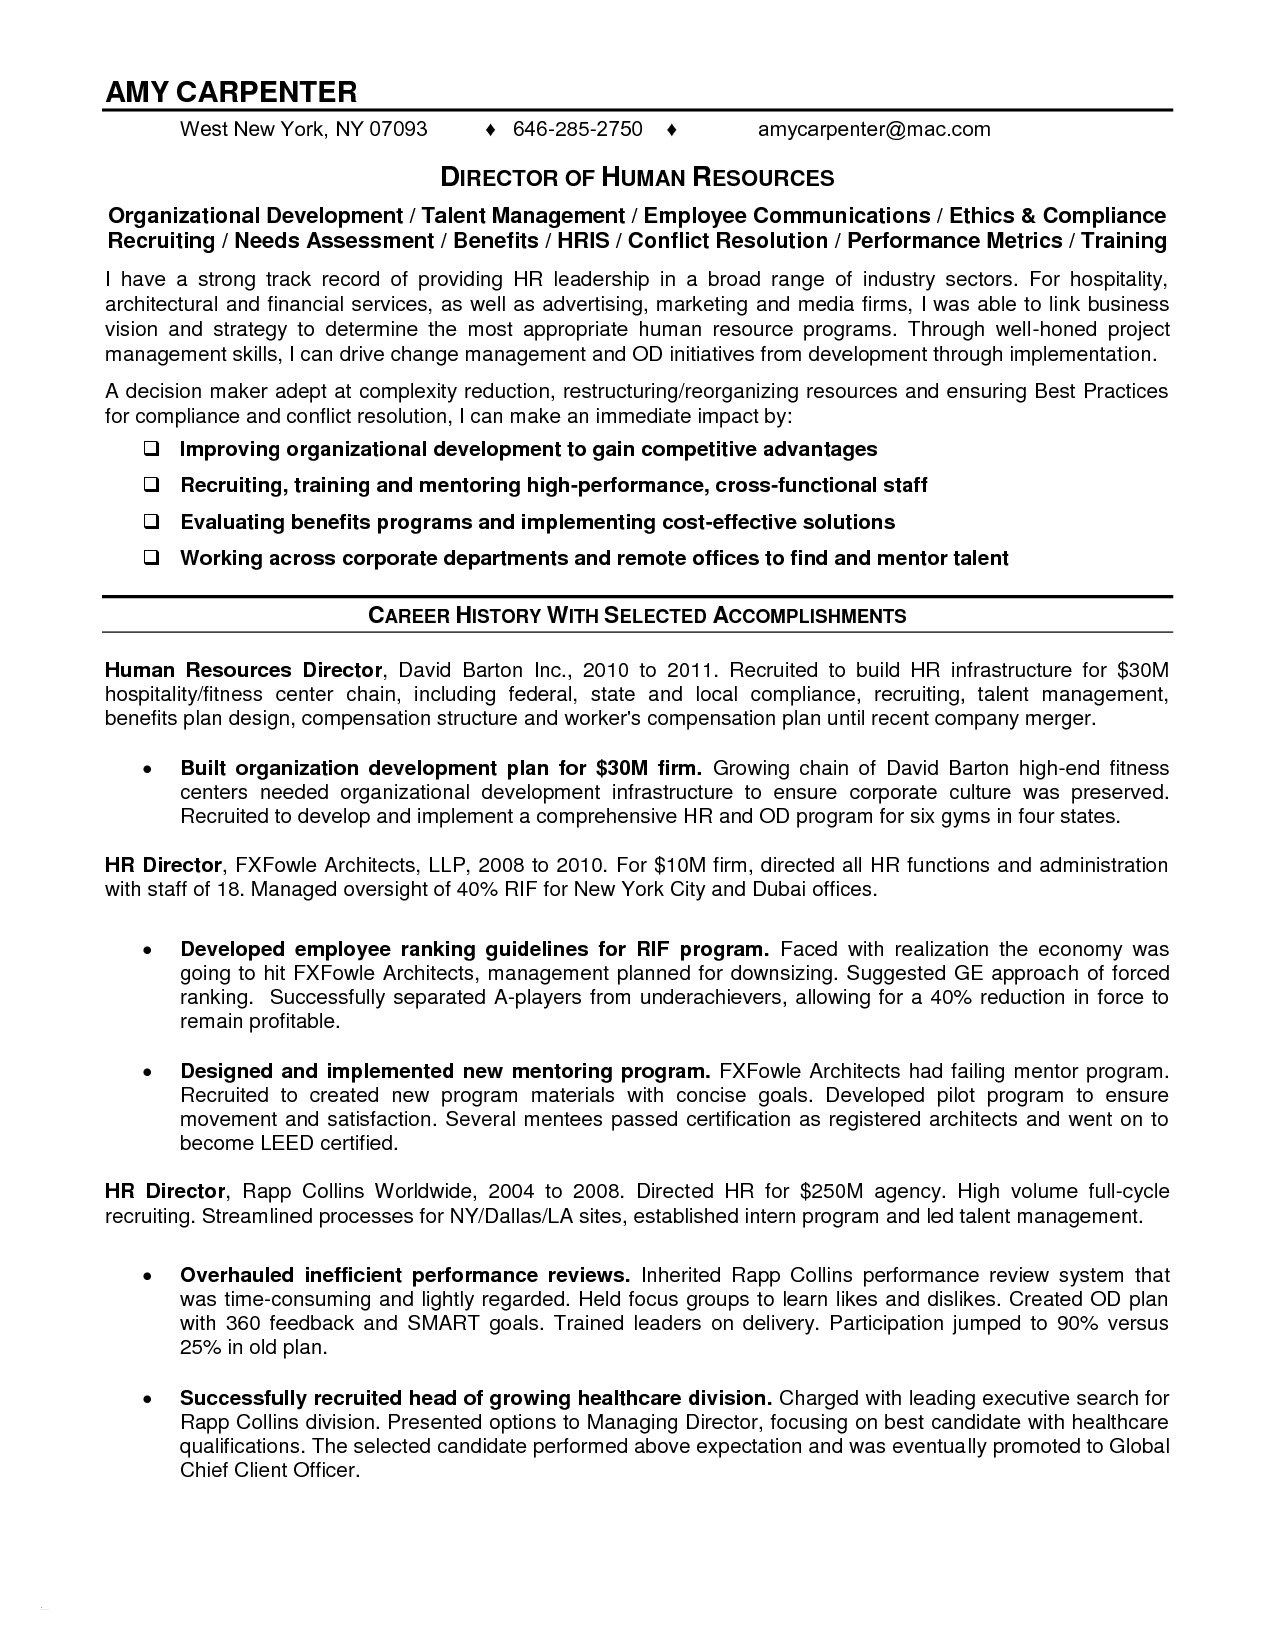 Internship Resume Sample for College Students - Accounting Internship Resume Samples Fresh Freshman College Student